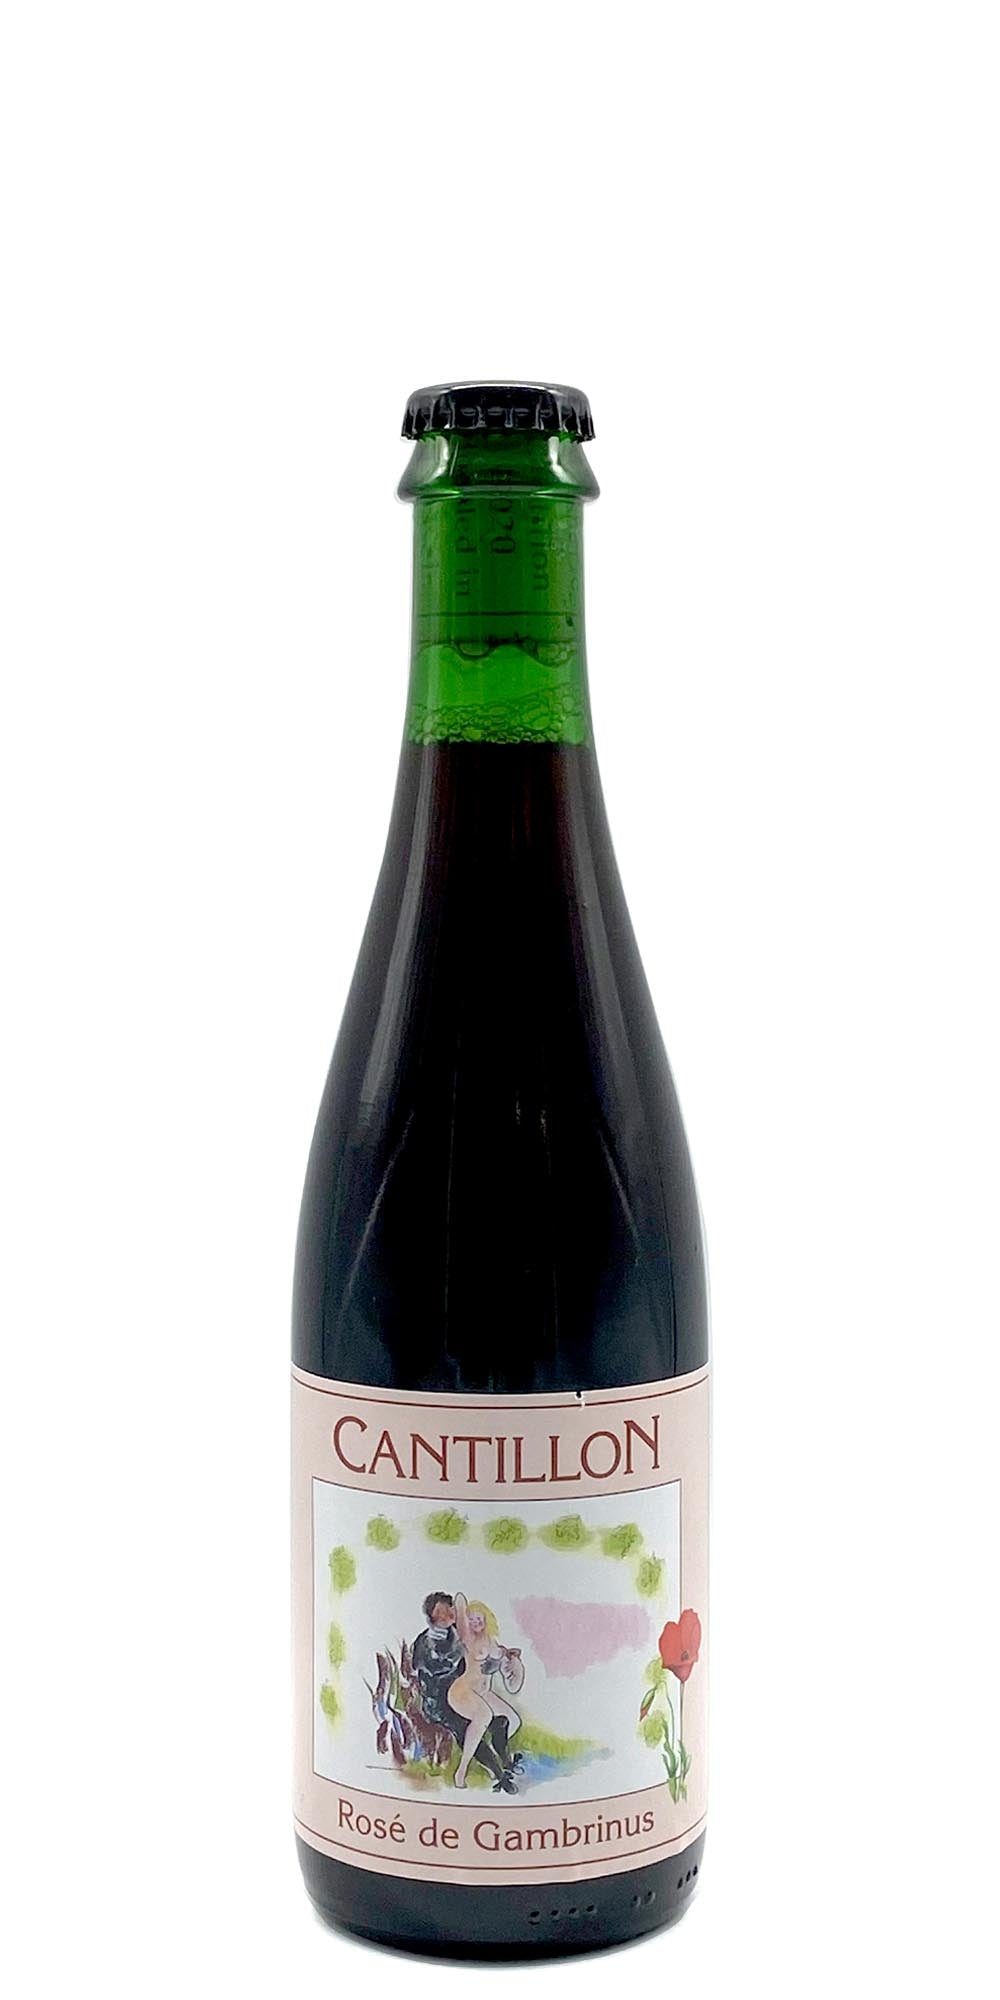 Cantillon - Rose de Gambrinus 2020 - 375ml